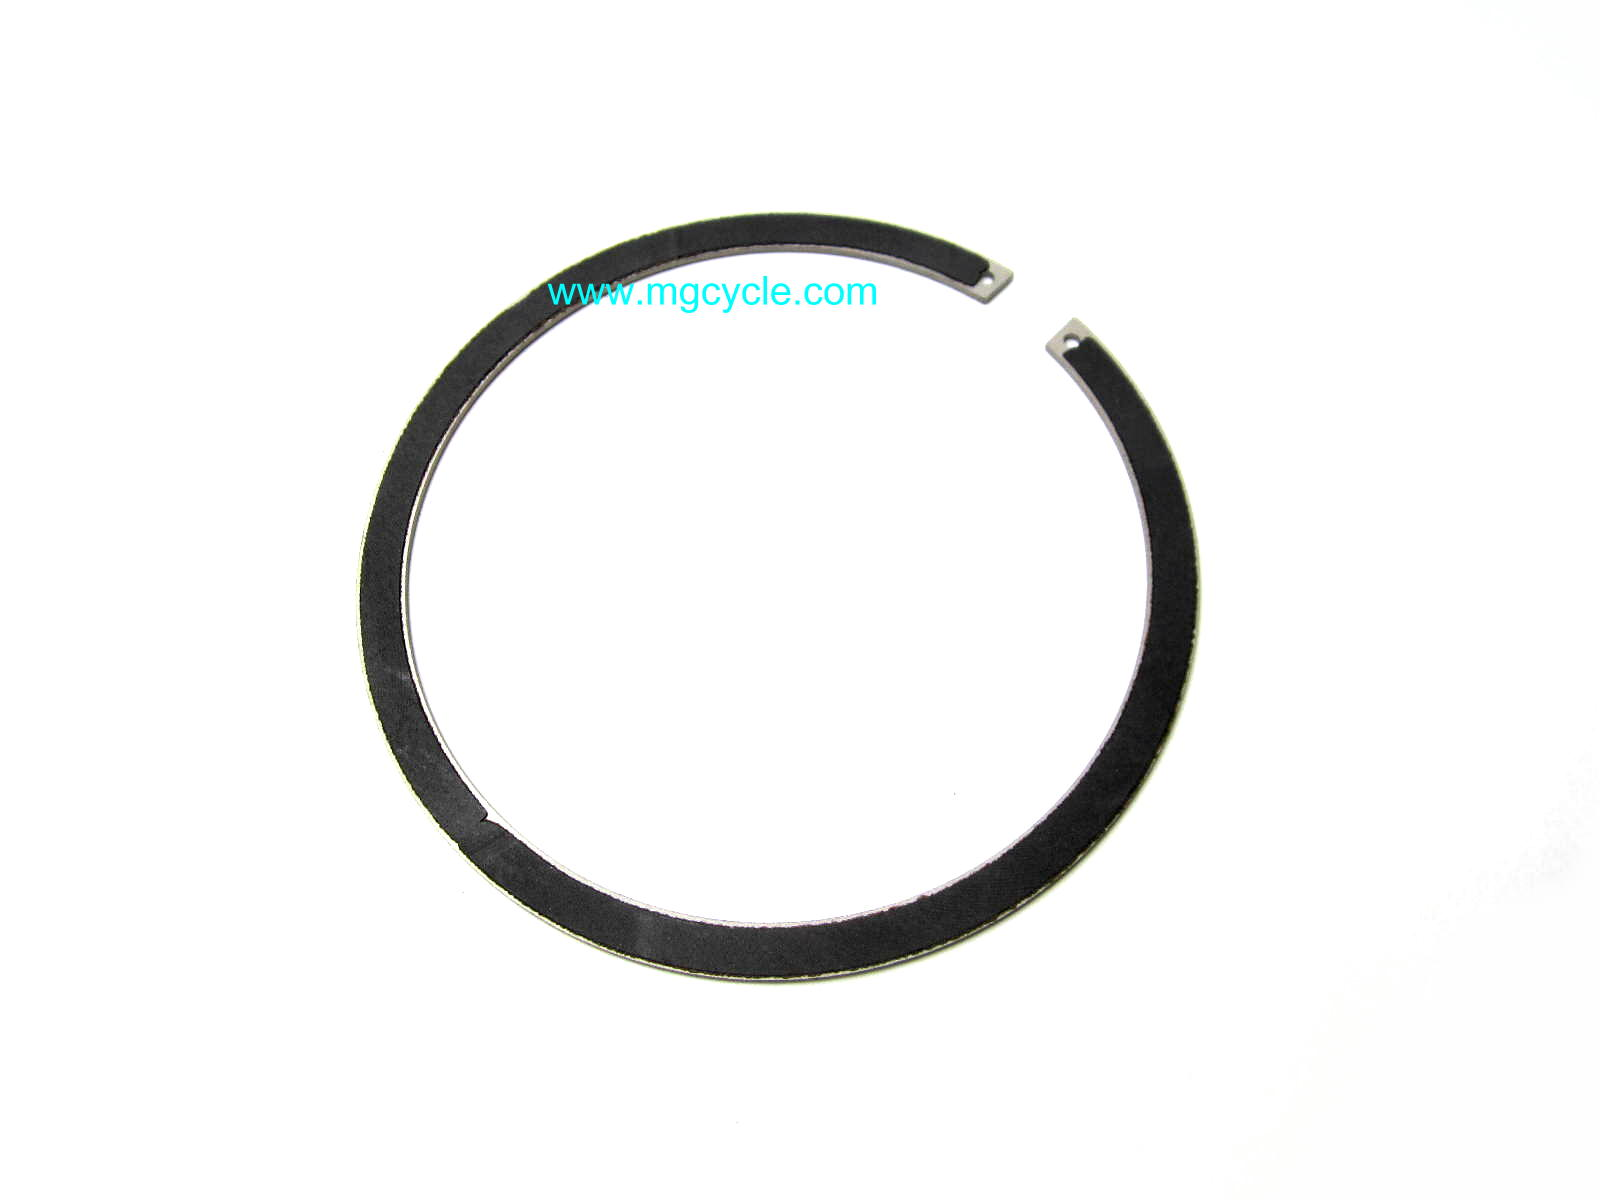 Cush drive plate snap ring with friction lining